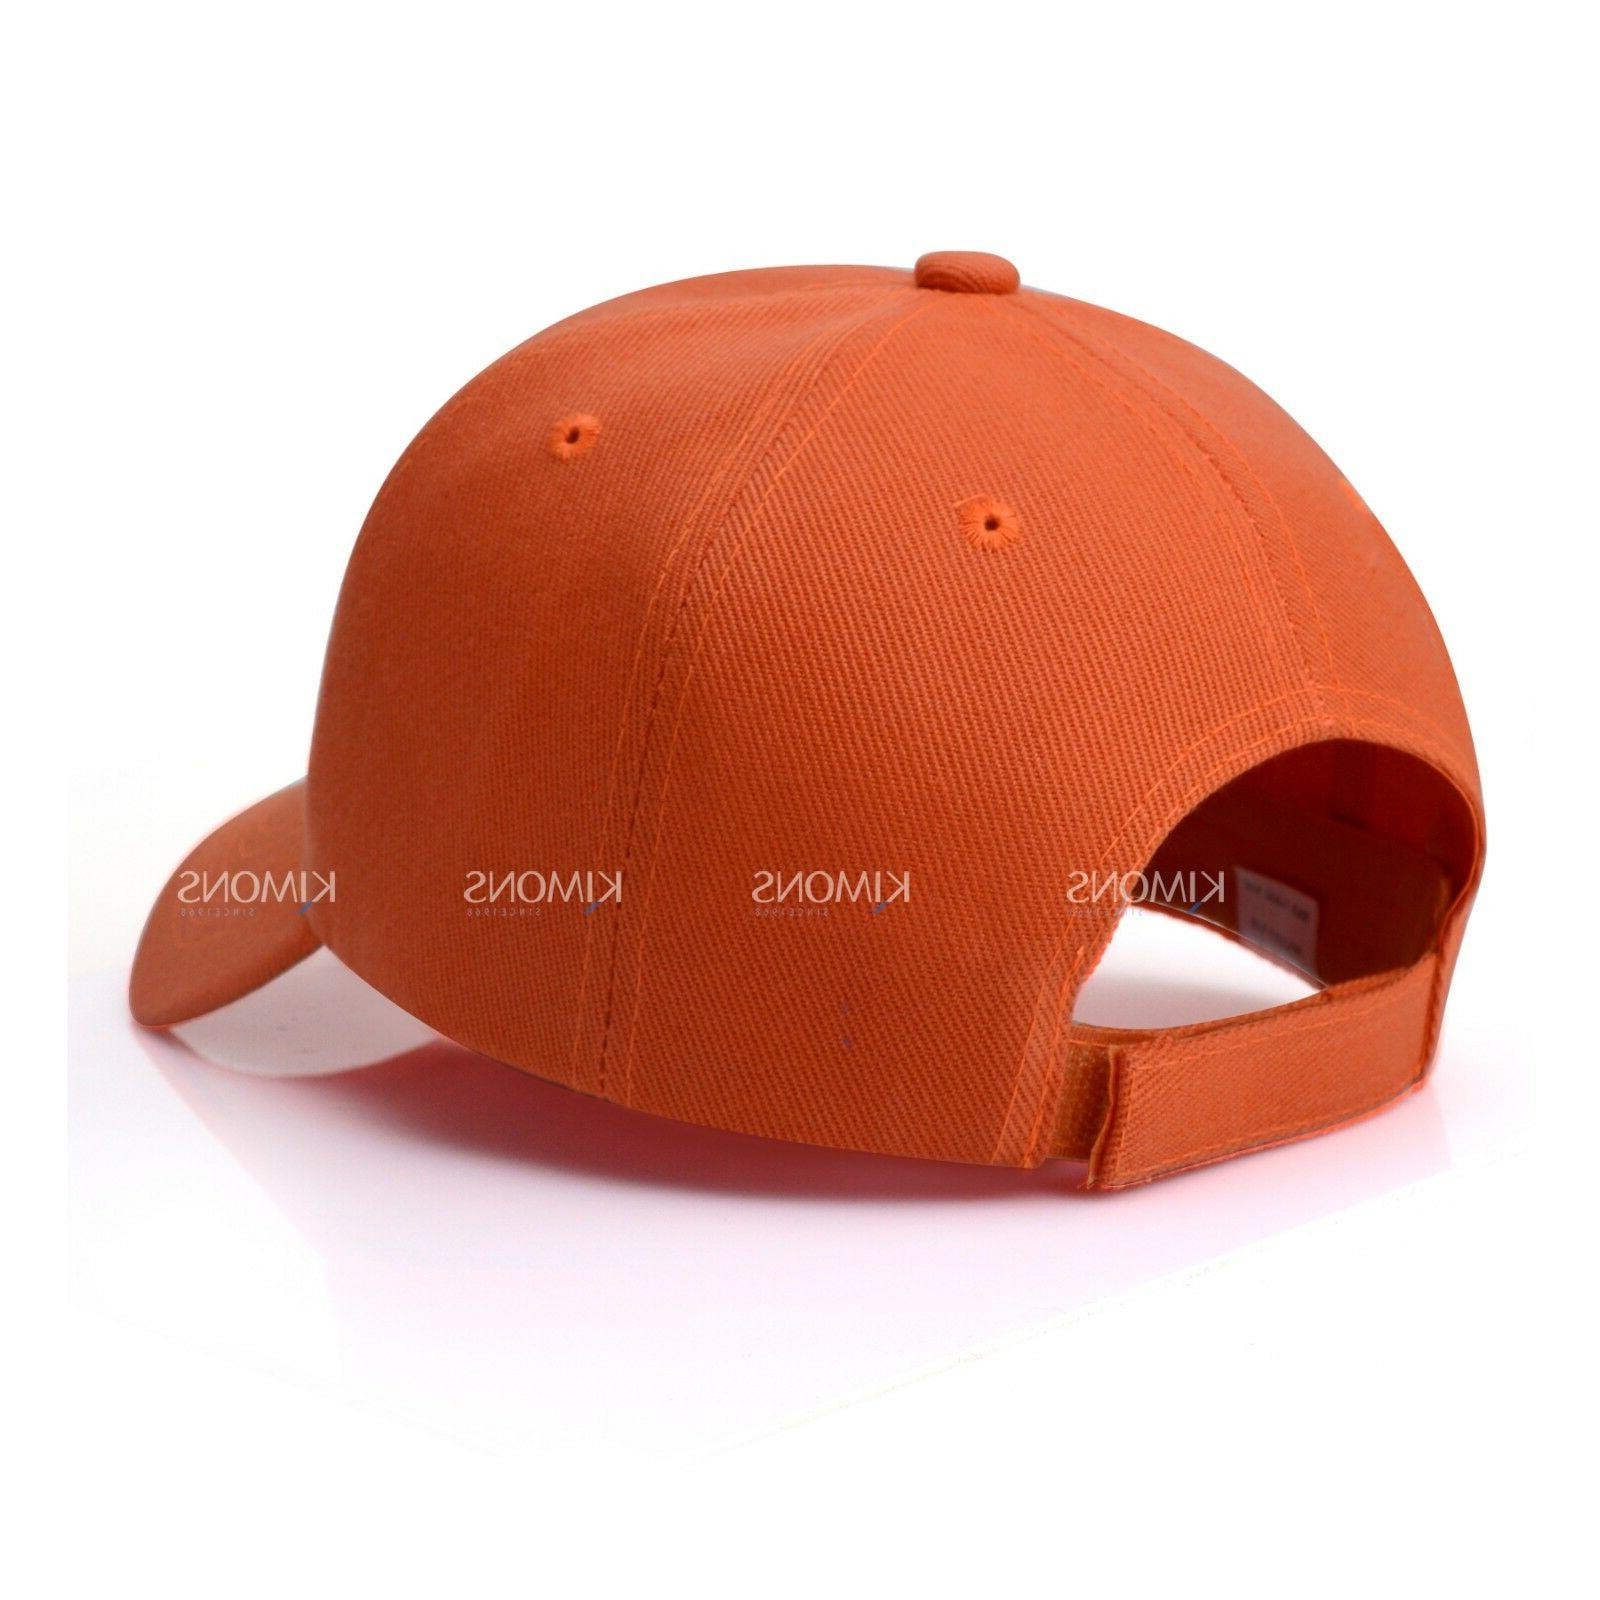 Loop Solid Color Curved Visor Hat Ball Army Mens